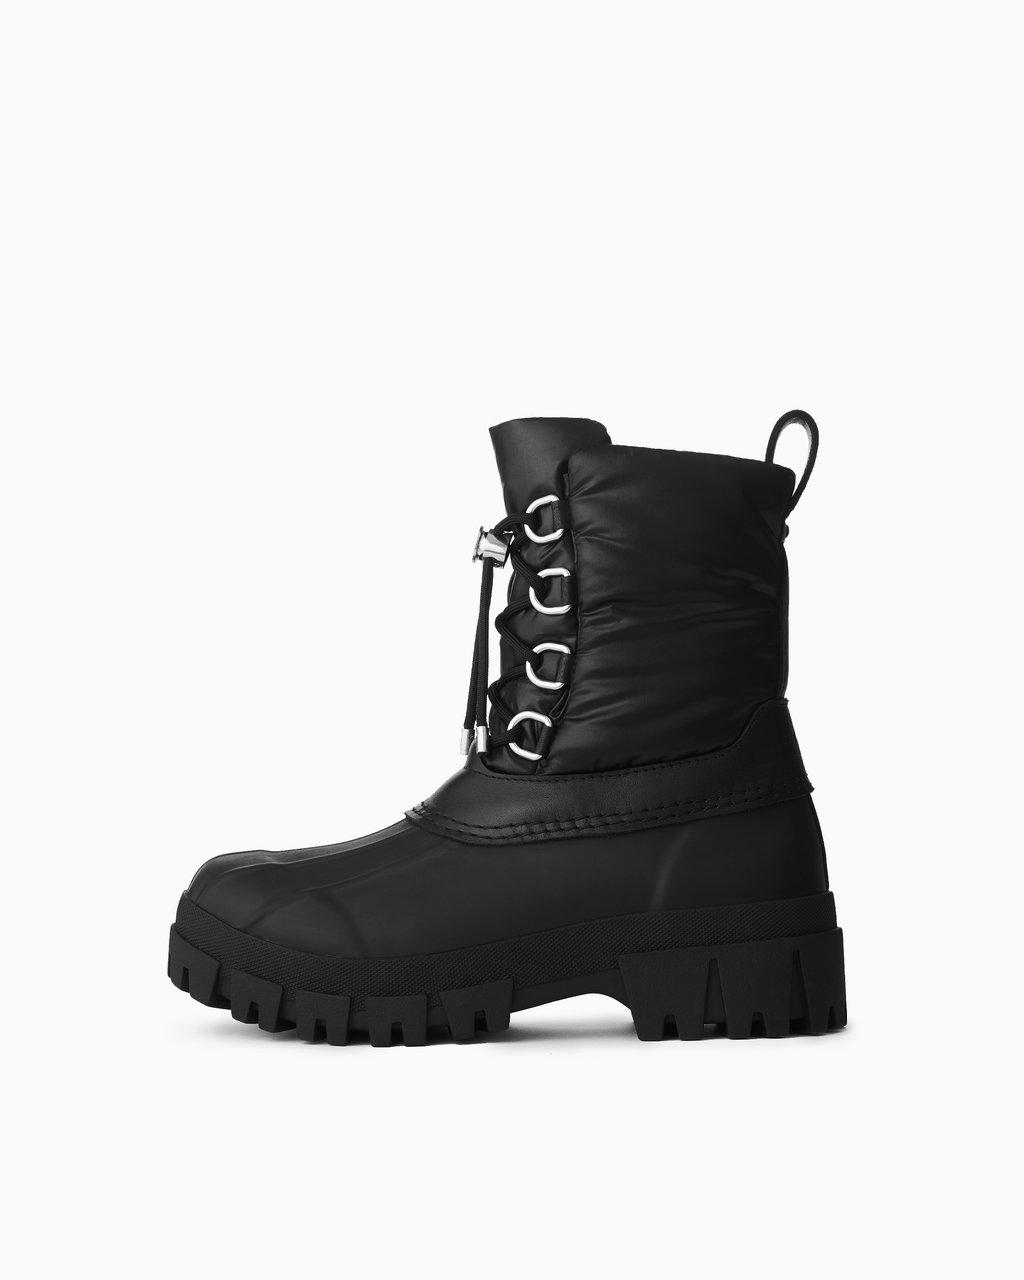 Rb Winter Boot - Water Resistant